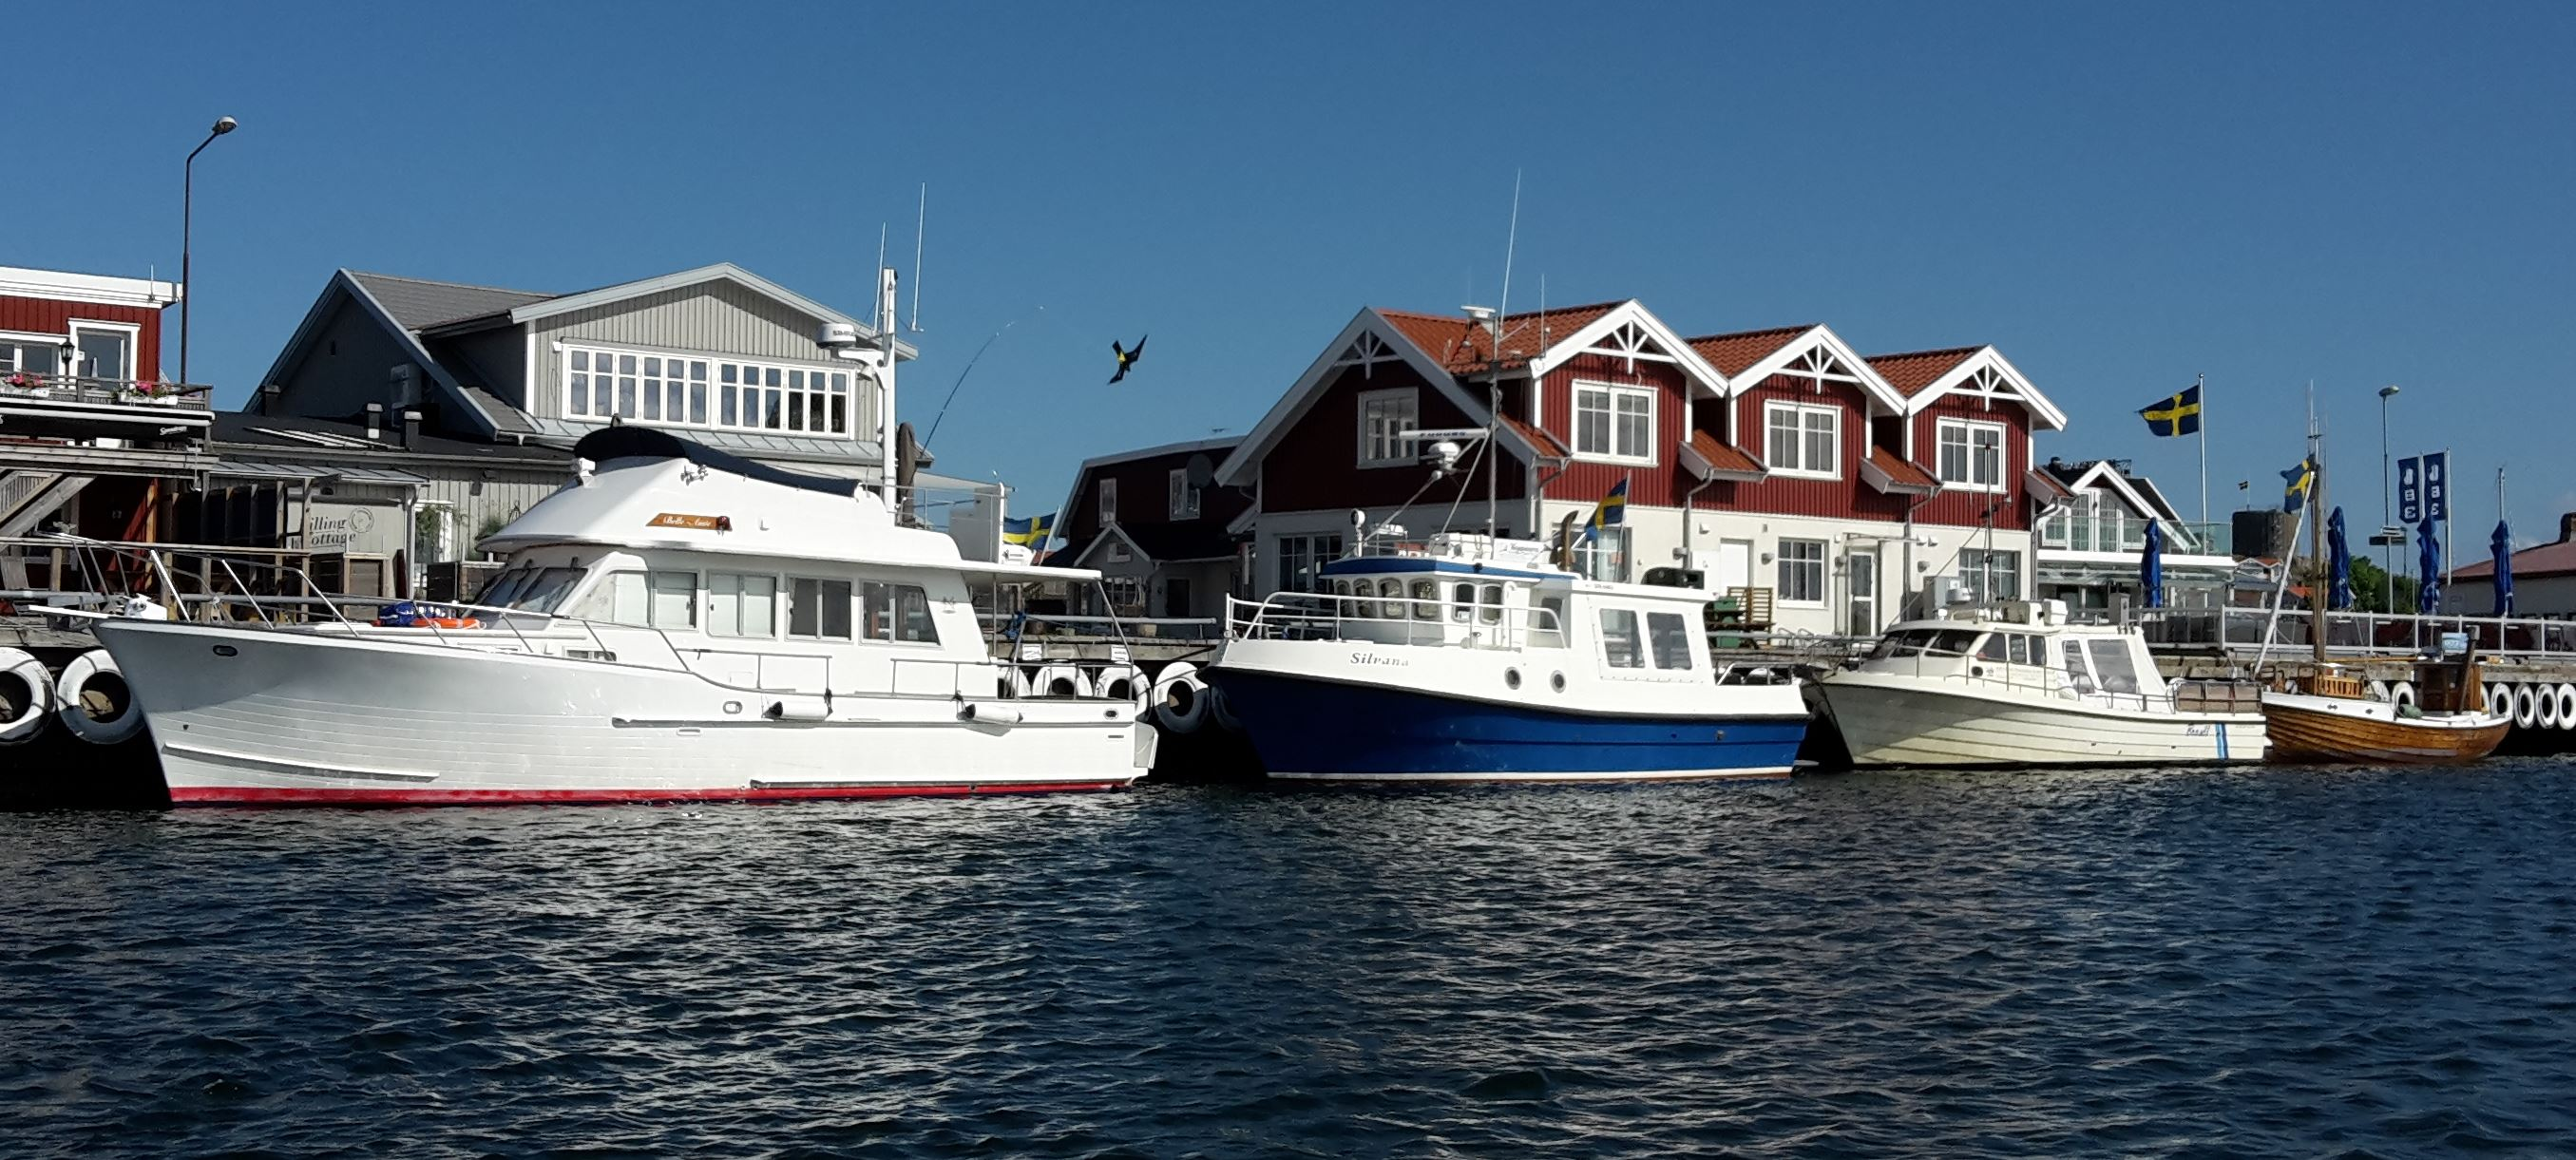 Tour 1: Guided archipelago tour 2 hours with seal safari and ½ hour visit at the island of Vinga